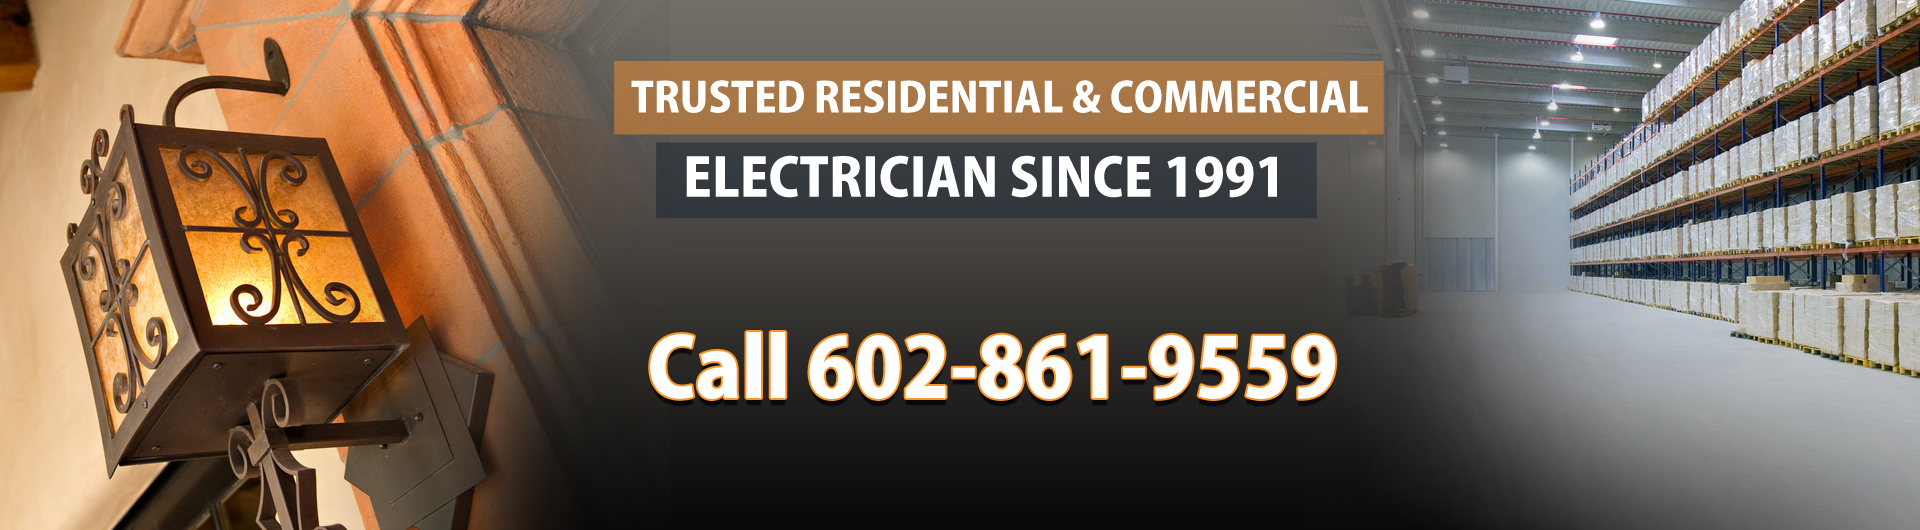 trusted-residential-and-commercial-electrician